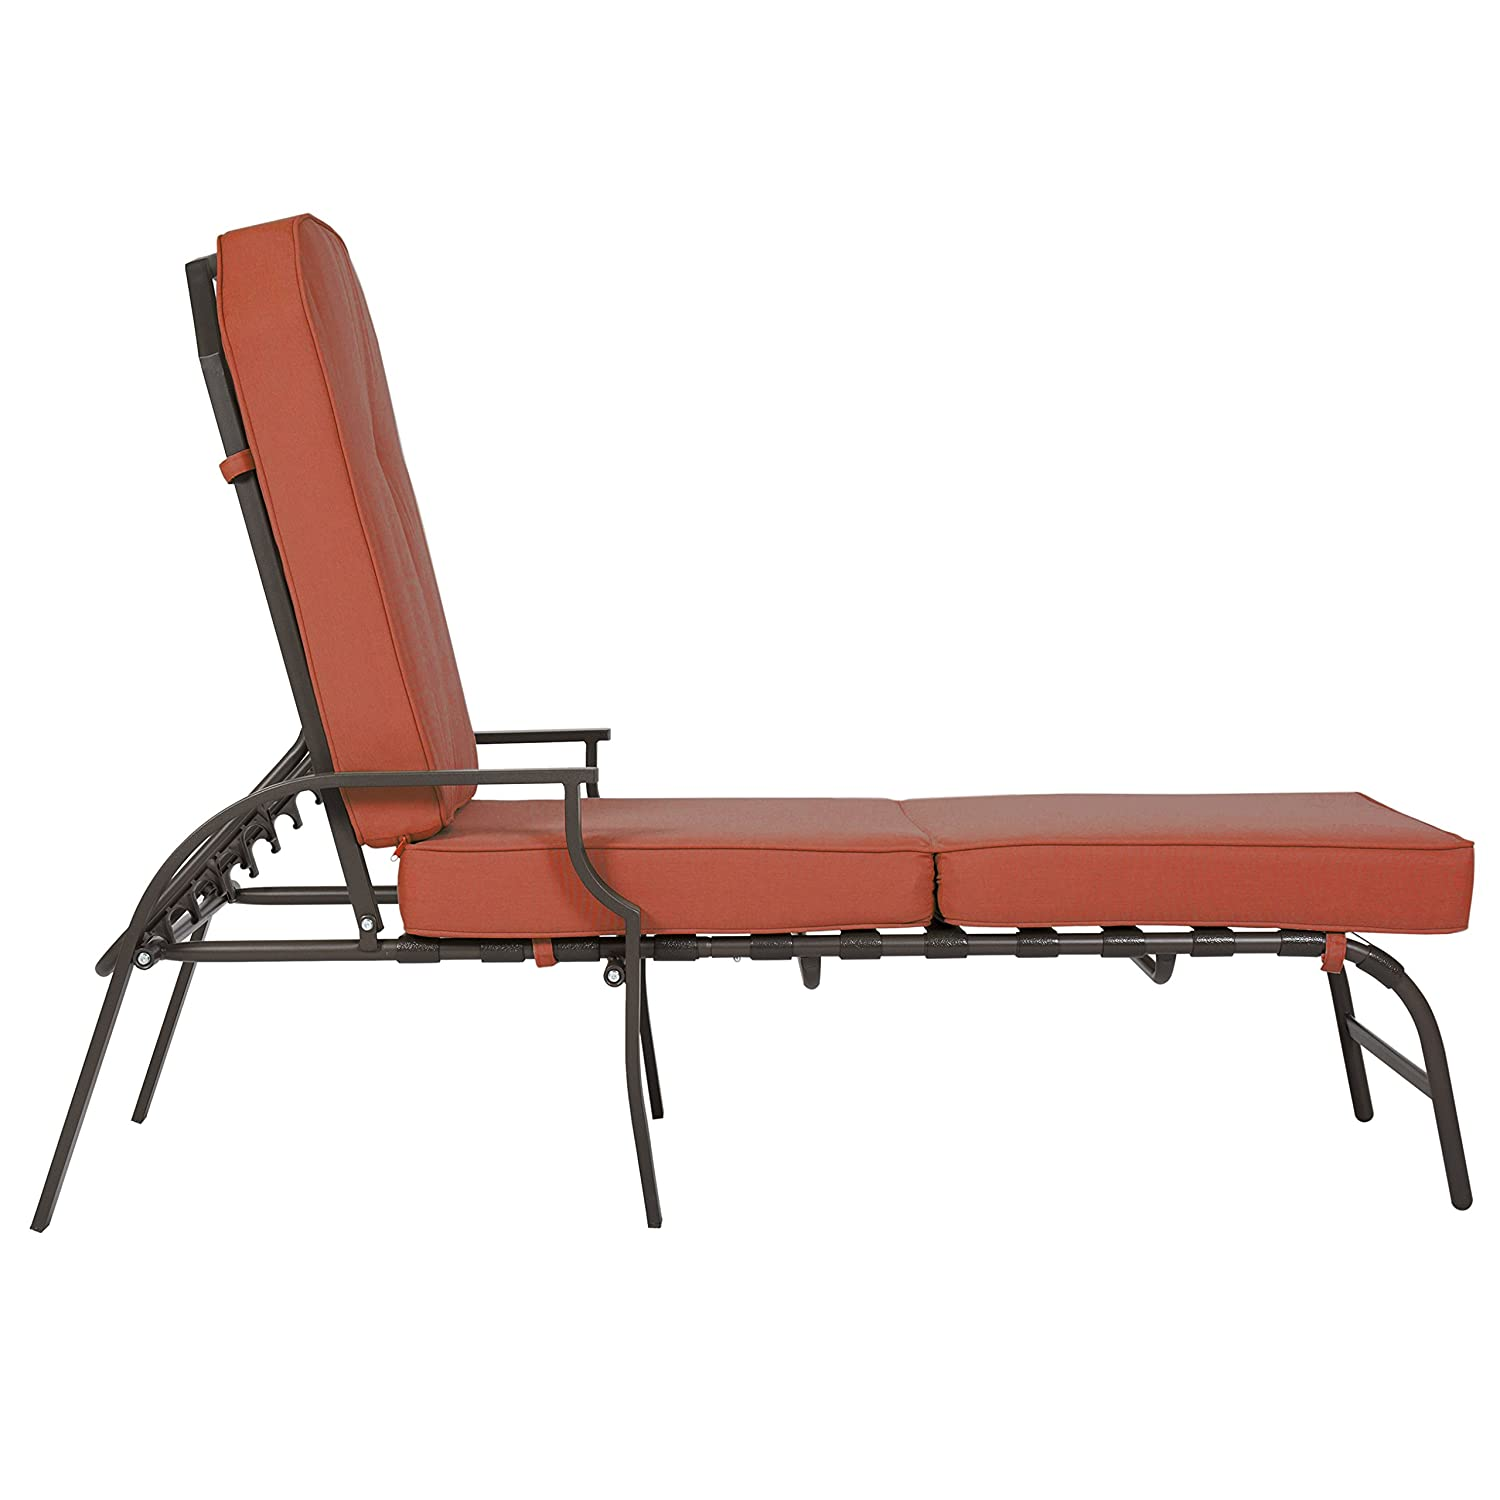 Patio chaise lounge chaise lounge patio furniture for Best chaise lounge